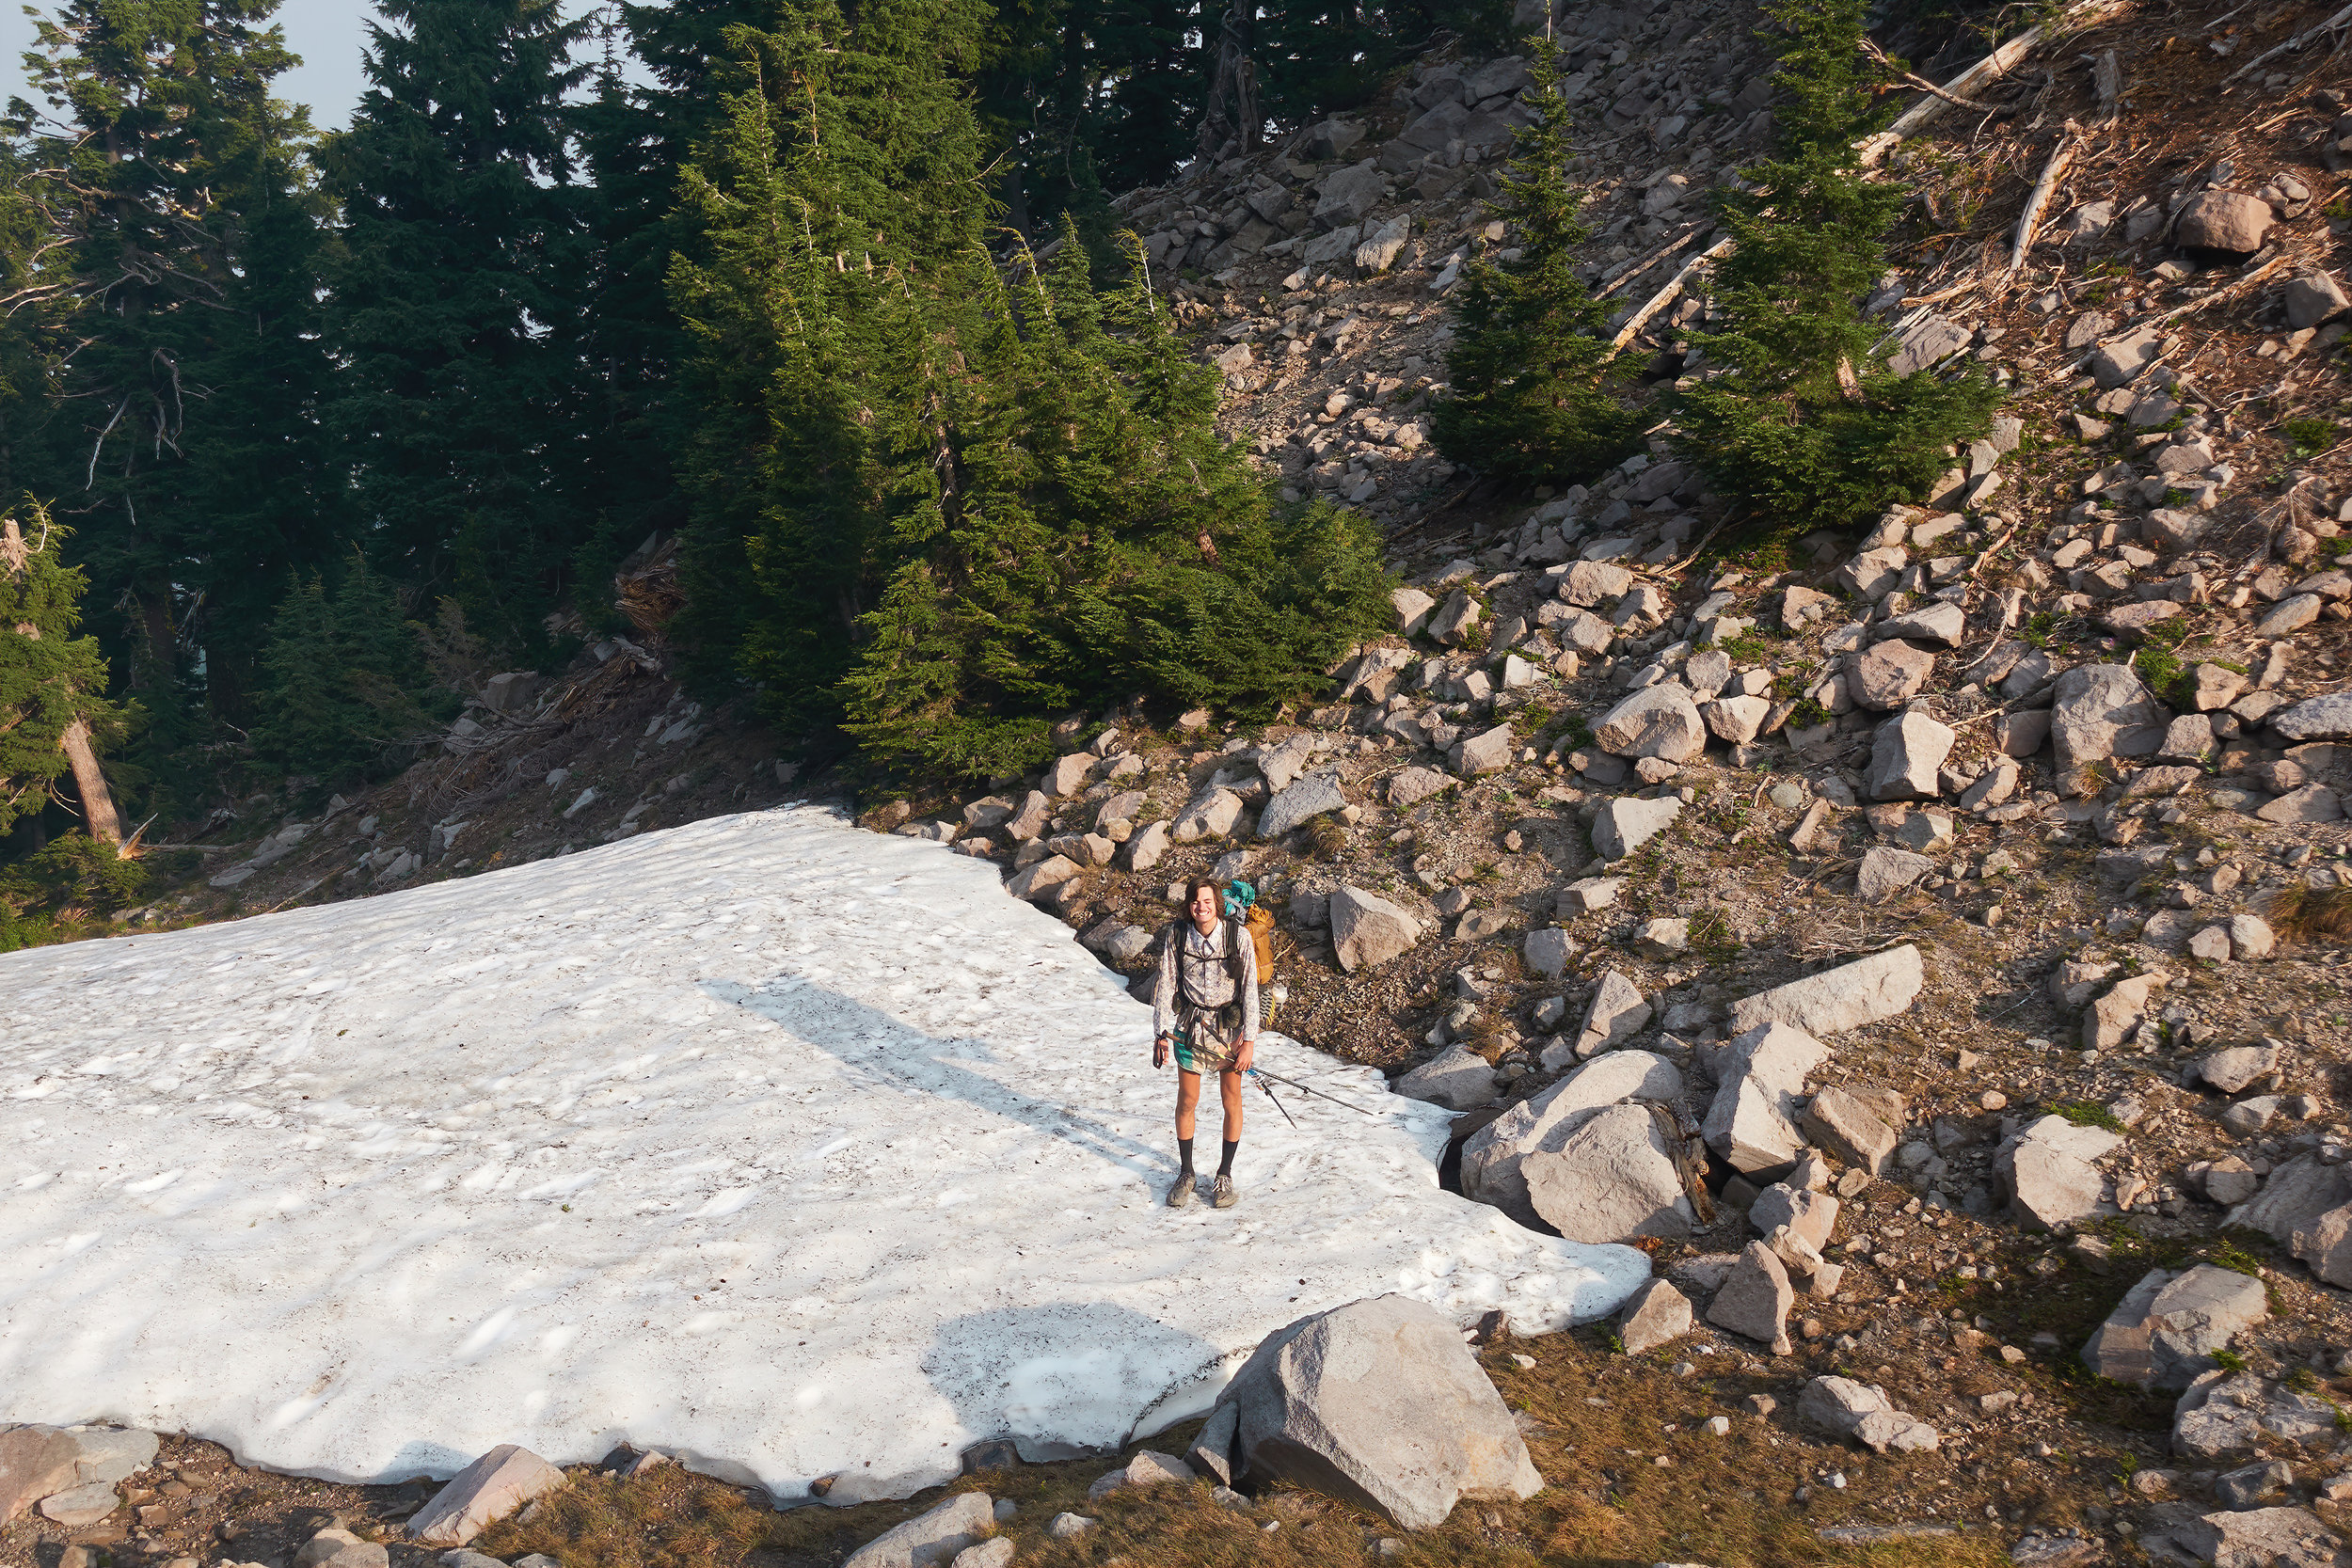 Sam wanted to stand on snow in every state along the PCT.